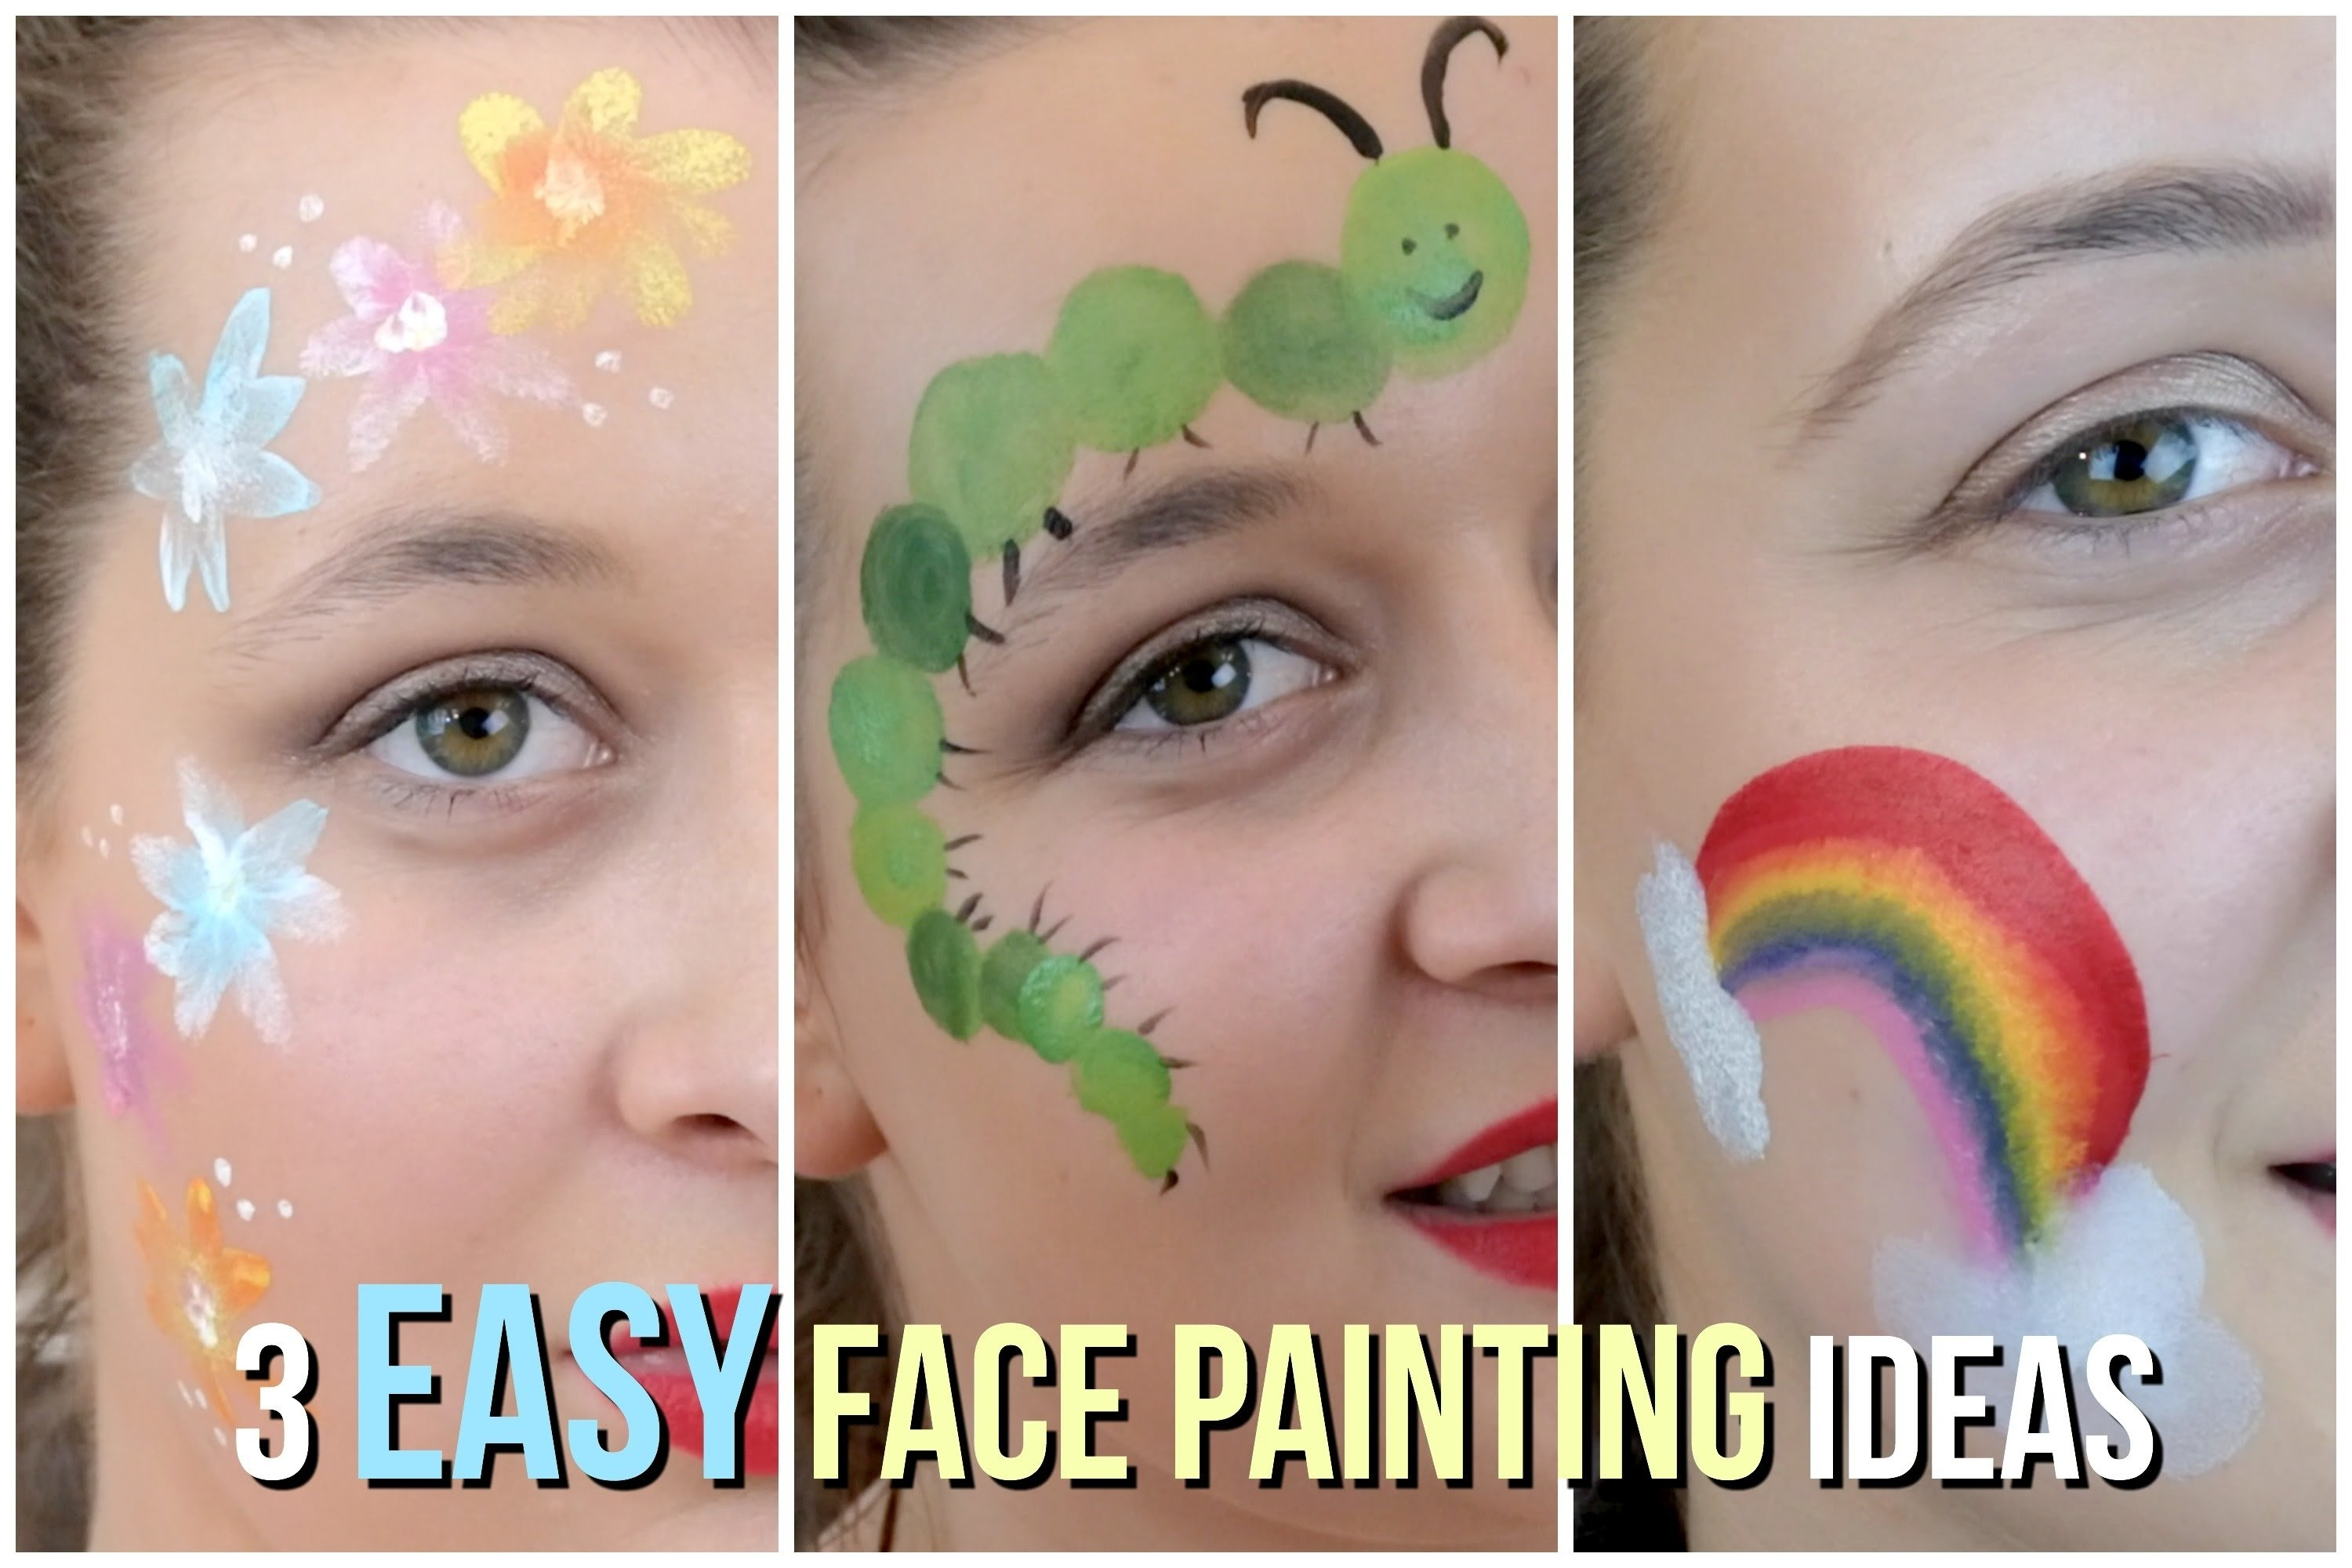 10 Famous Face Painting Ideas Step By Step 3 easy face painting ideas that your kids will love youtube 5 2020